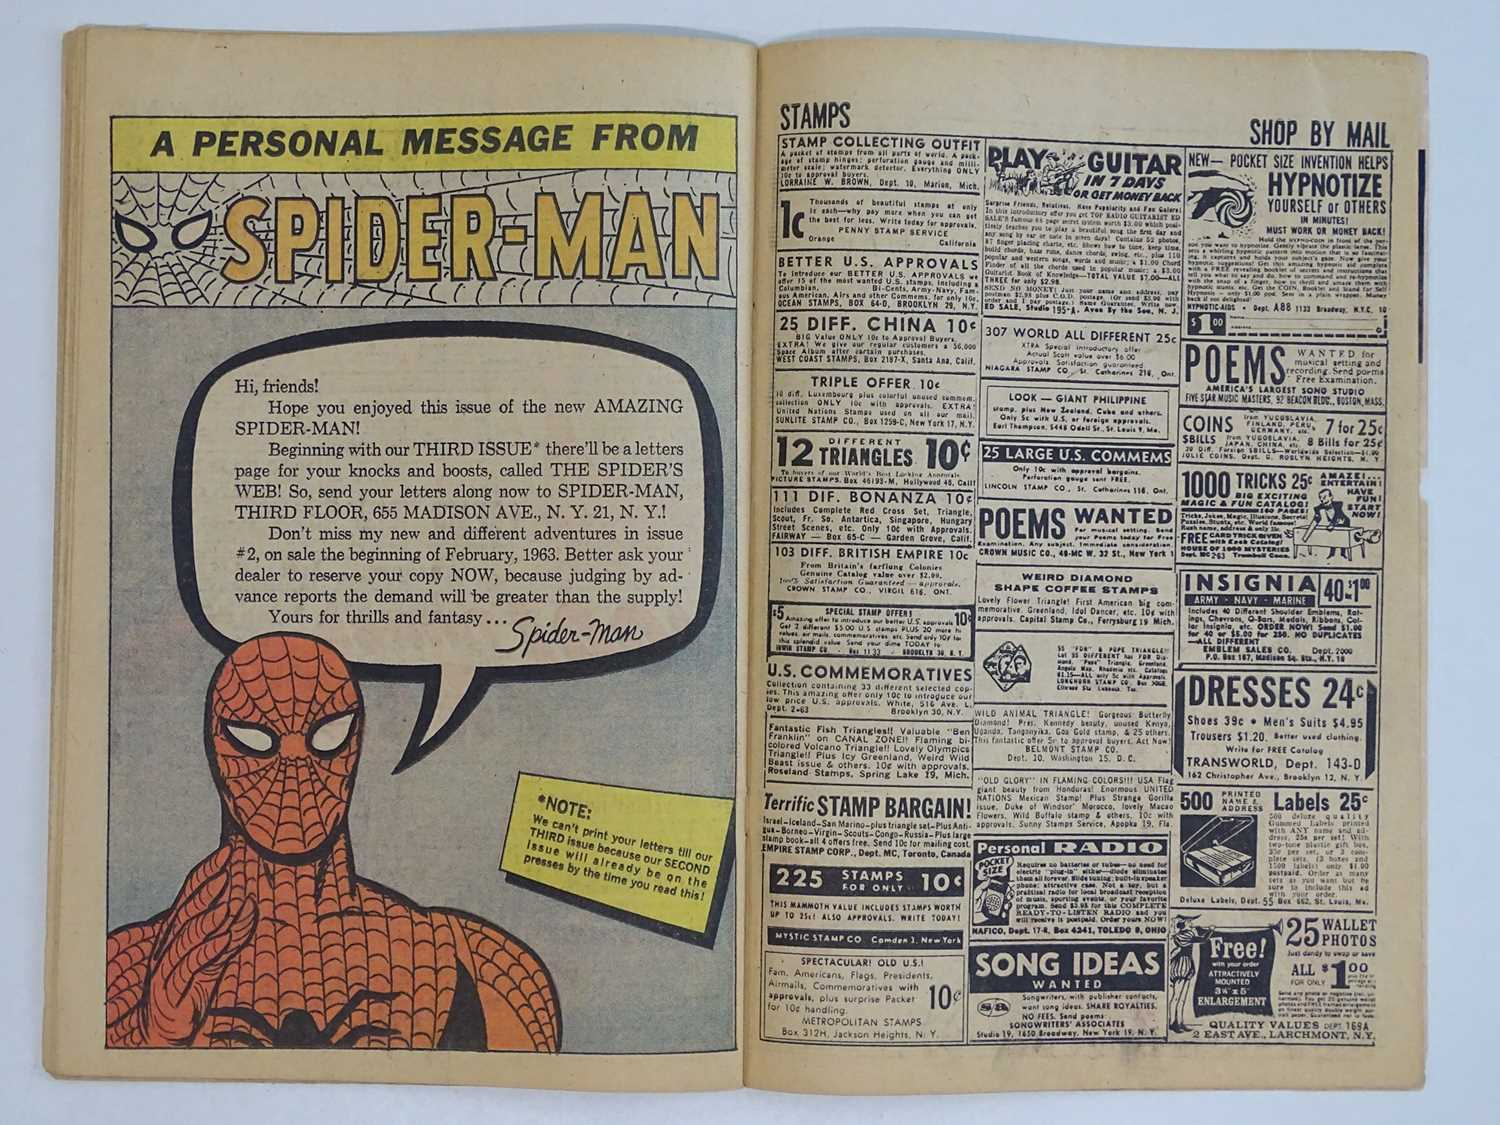 AMAZING SPIDER-MAN #1 - (1963 - MARVEL - UK Price Variant) - First appearance of Spider-Man un his - Image 23 of 27